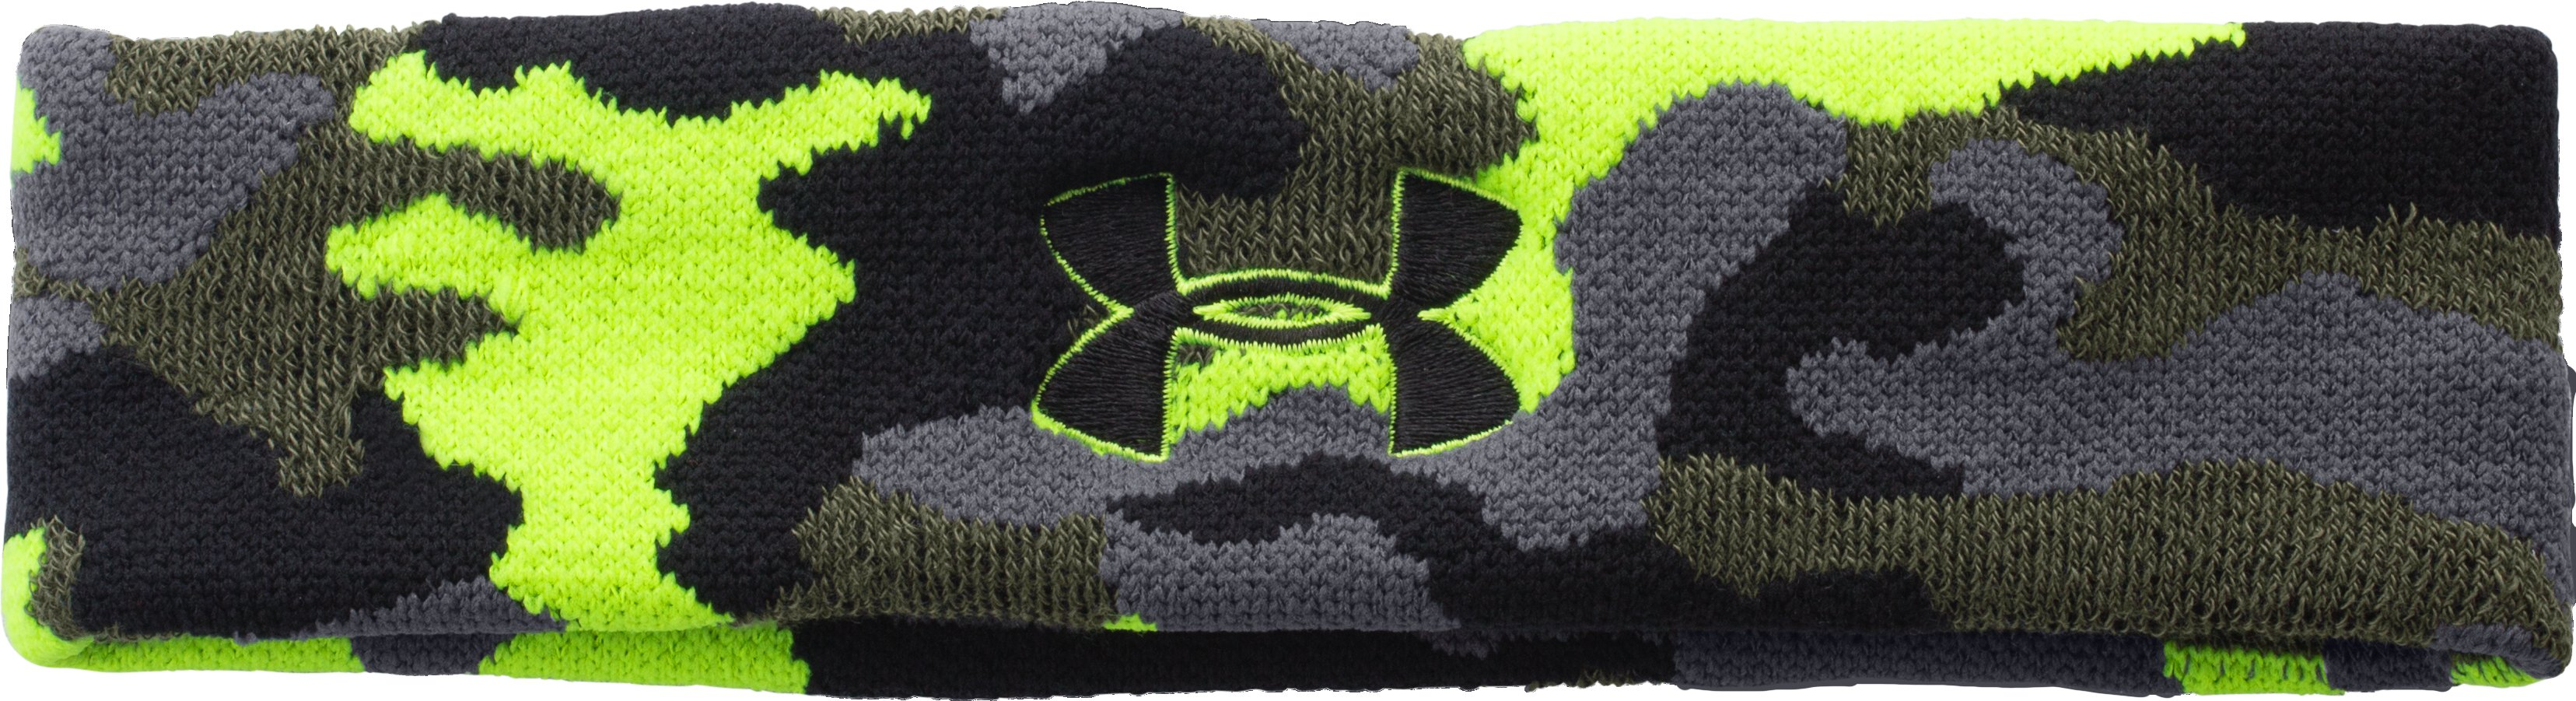 UA Jacquarded Headband, Rough